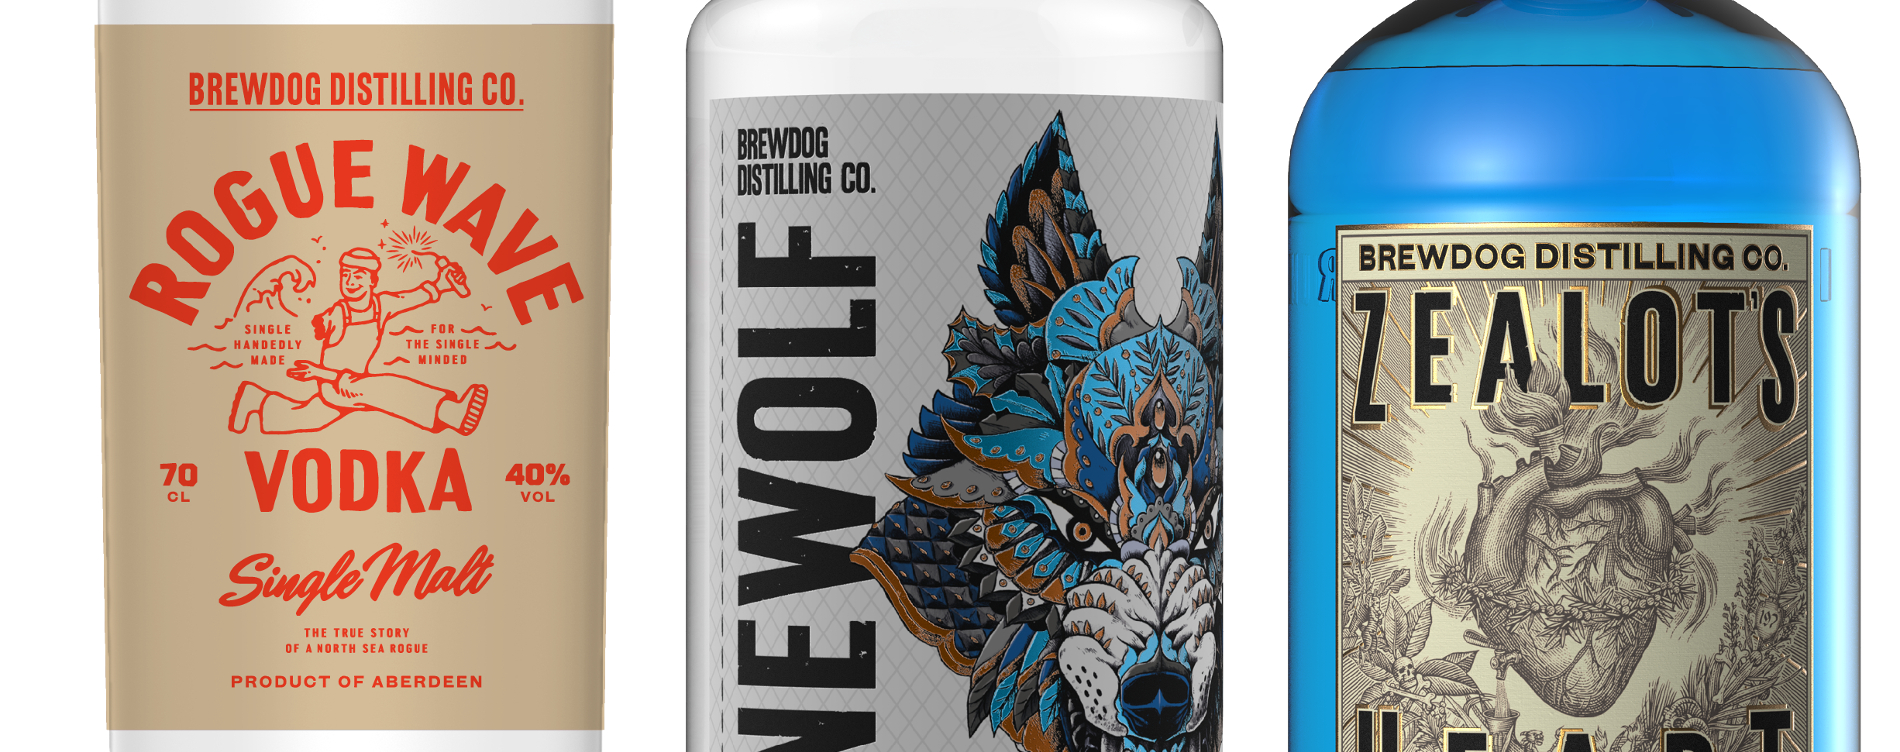 ANNOUNCING THE BREWDOG DISTILLING CO.